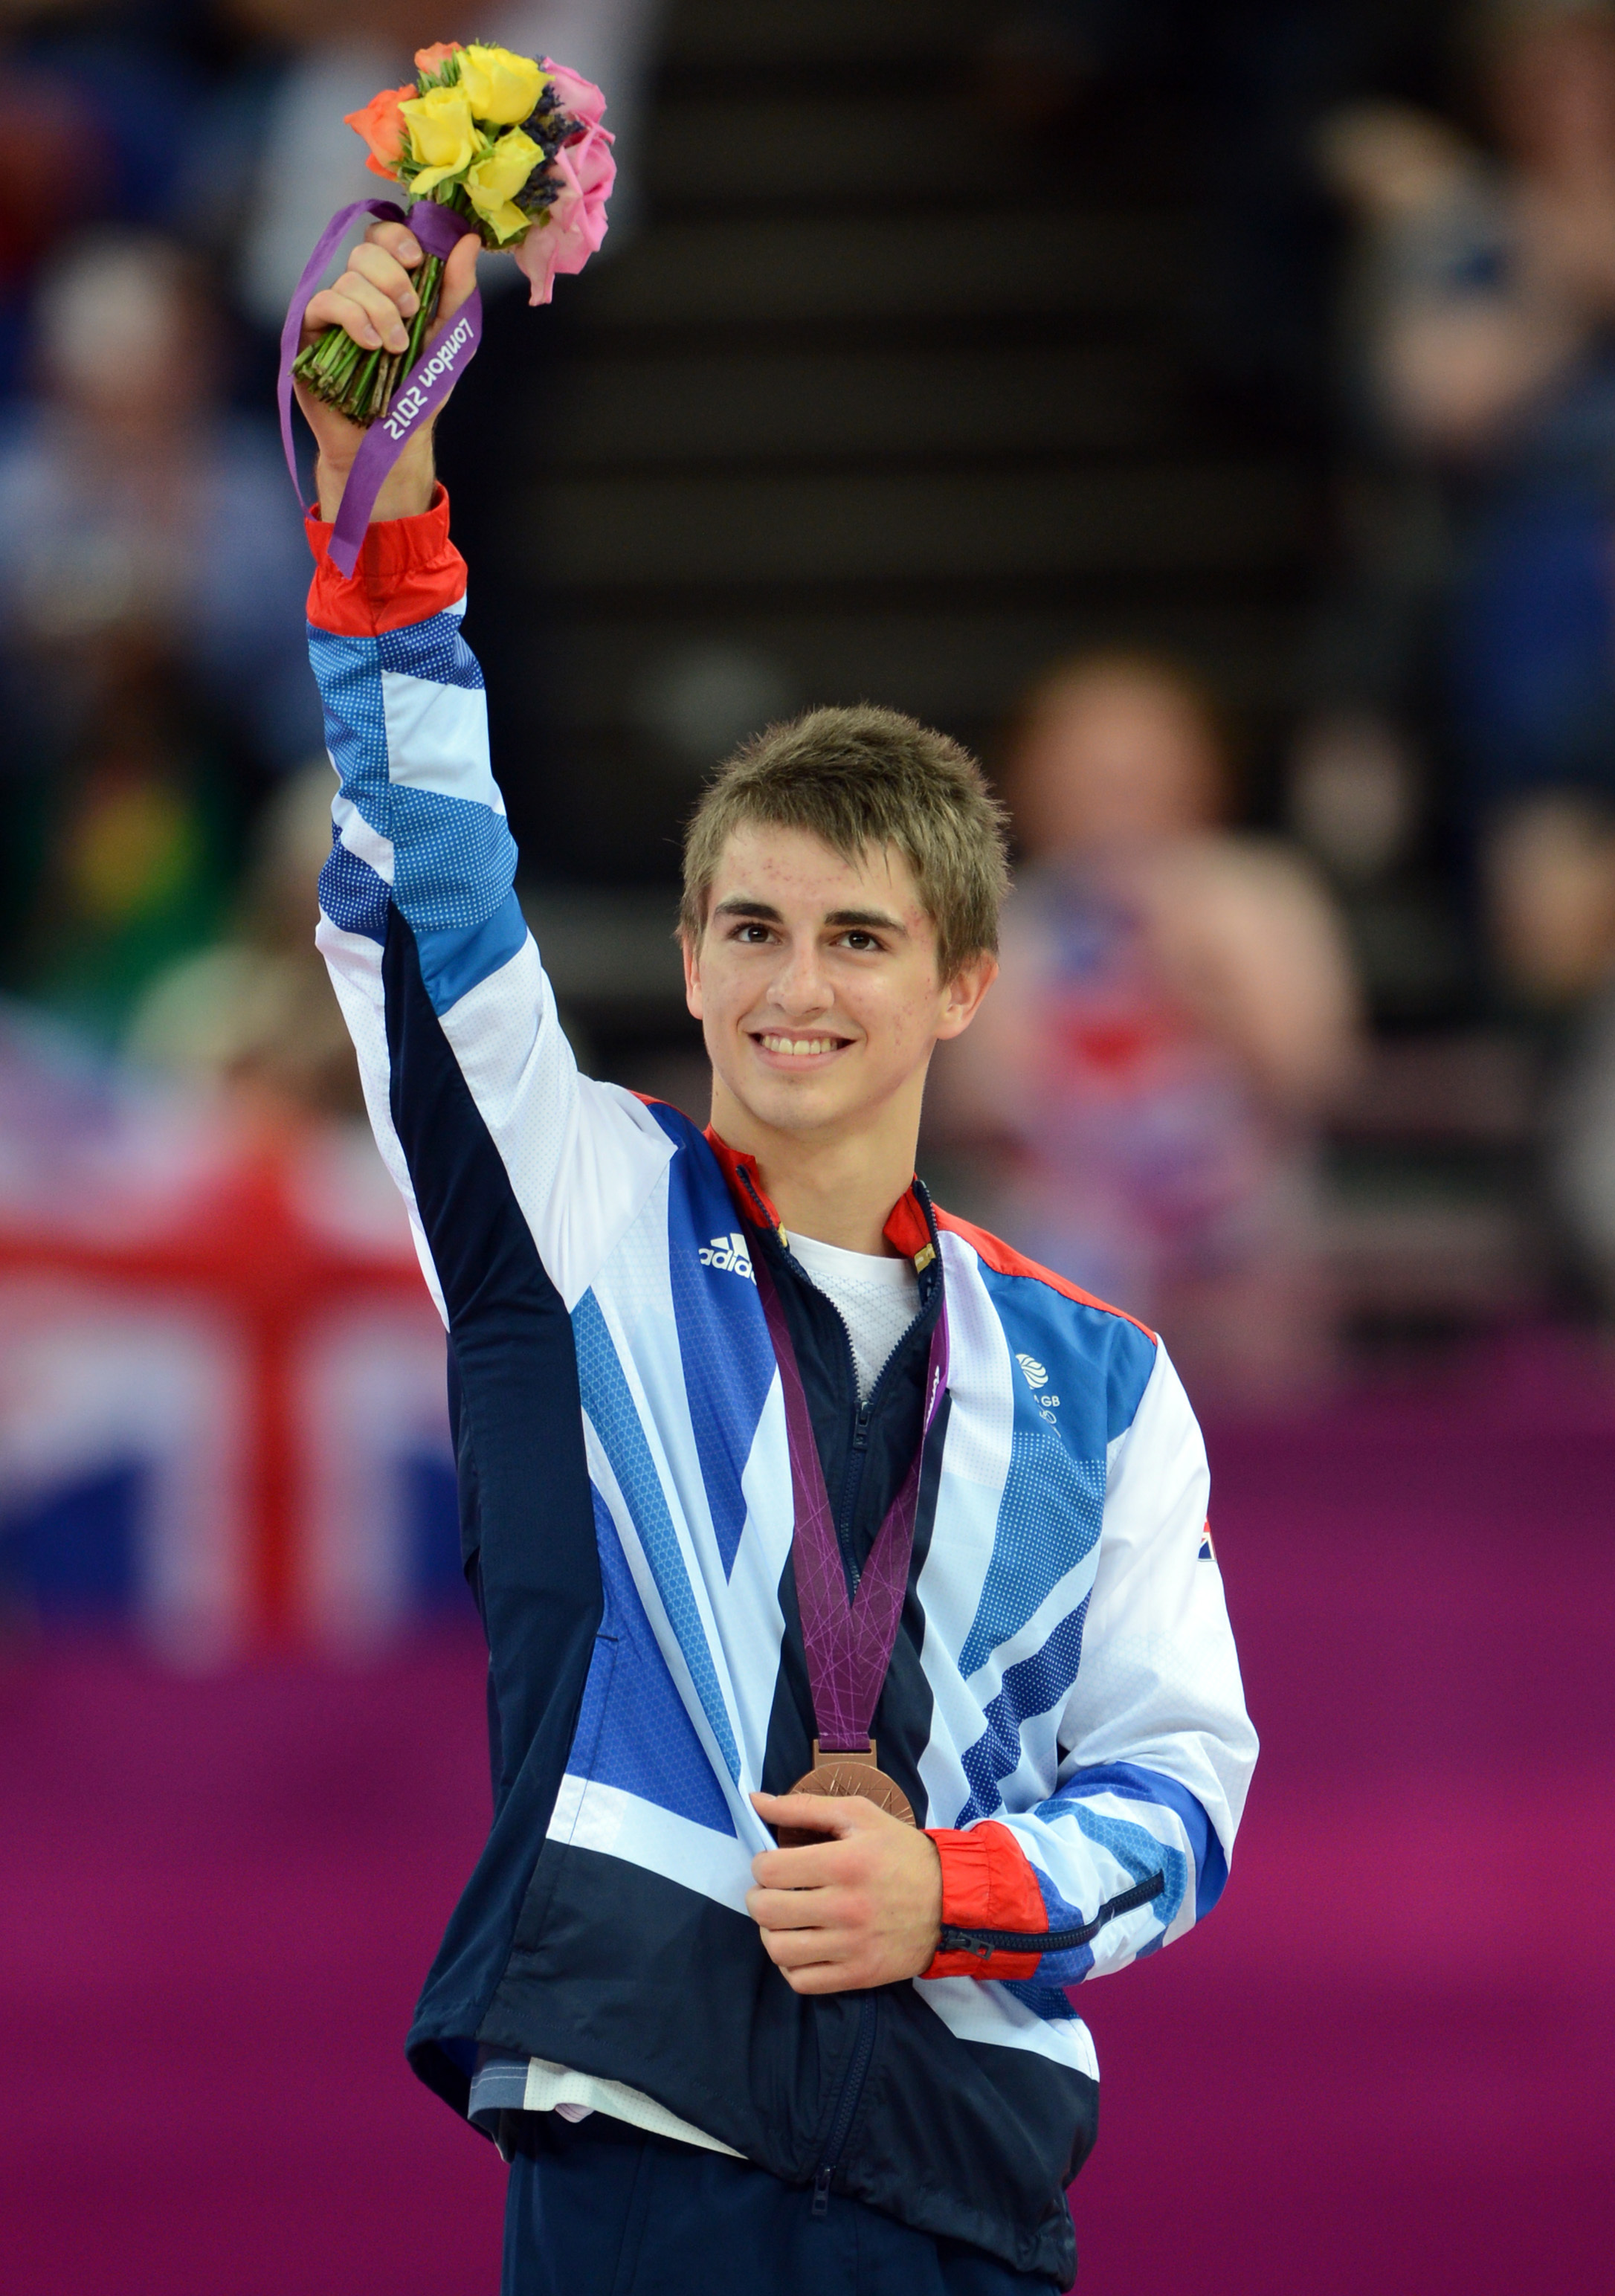 Proud - Max Whitlock